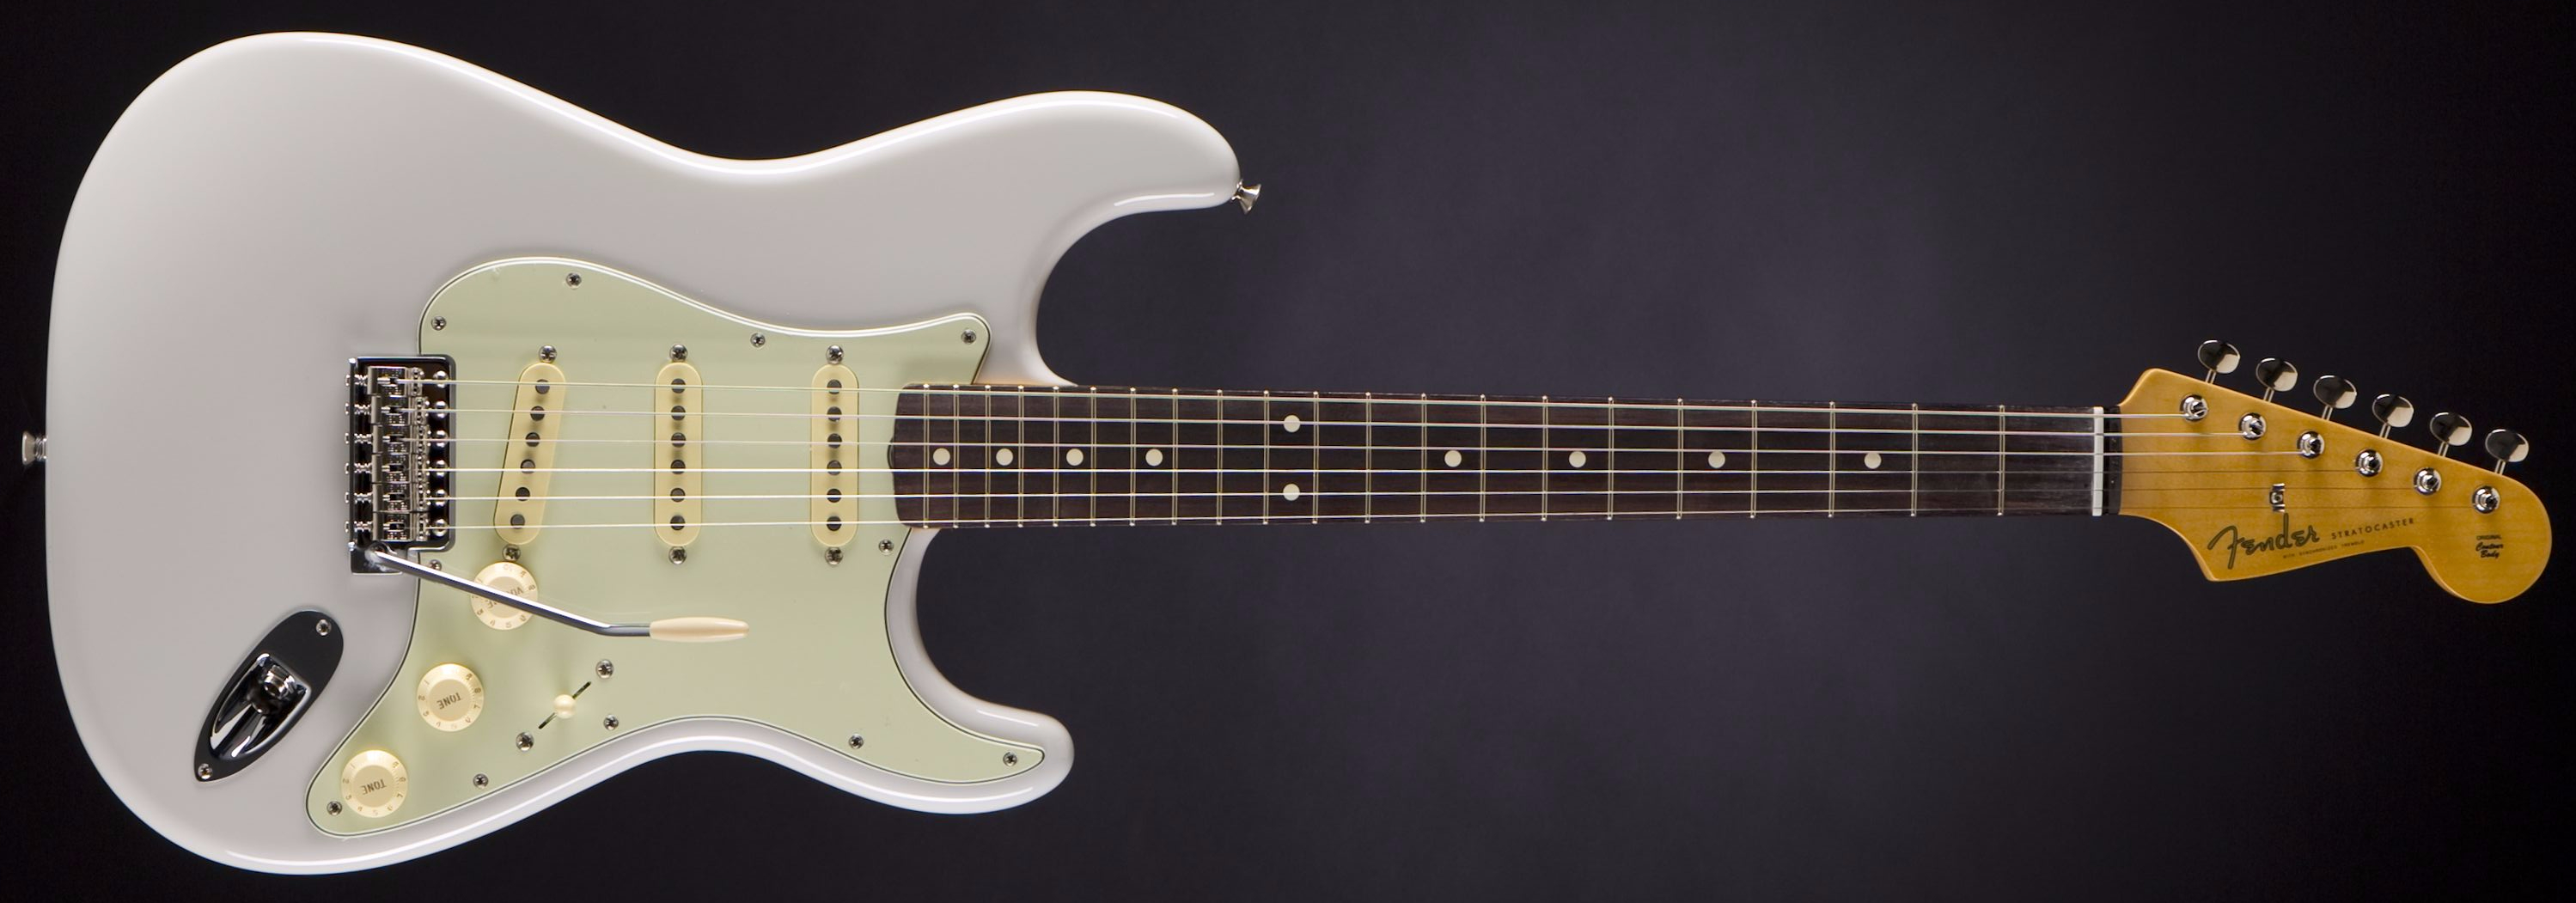 FENDER FSR Classic '60s Stratocaster Lilac Front